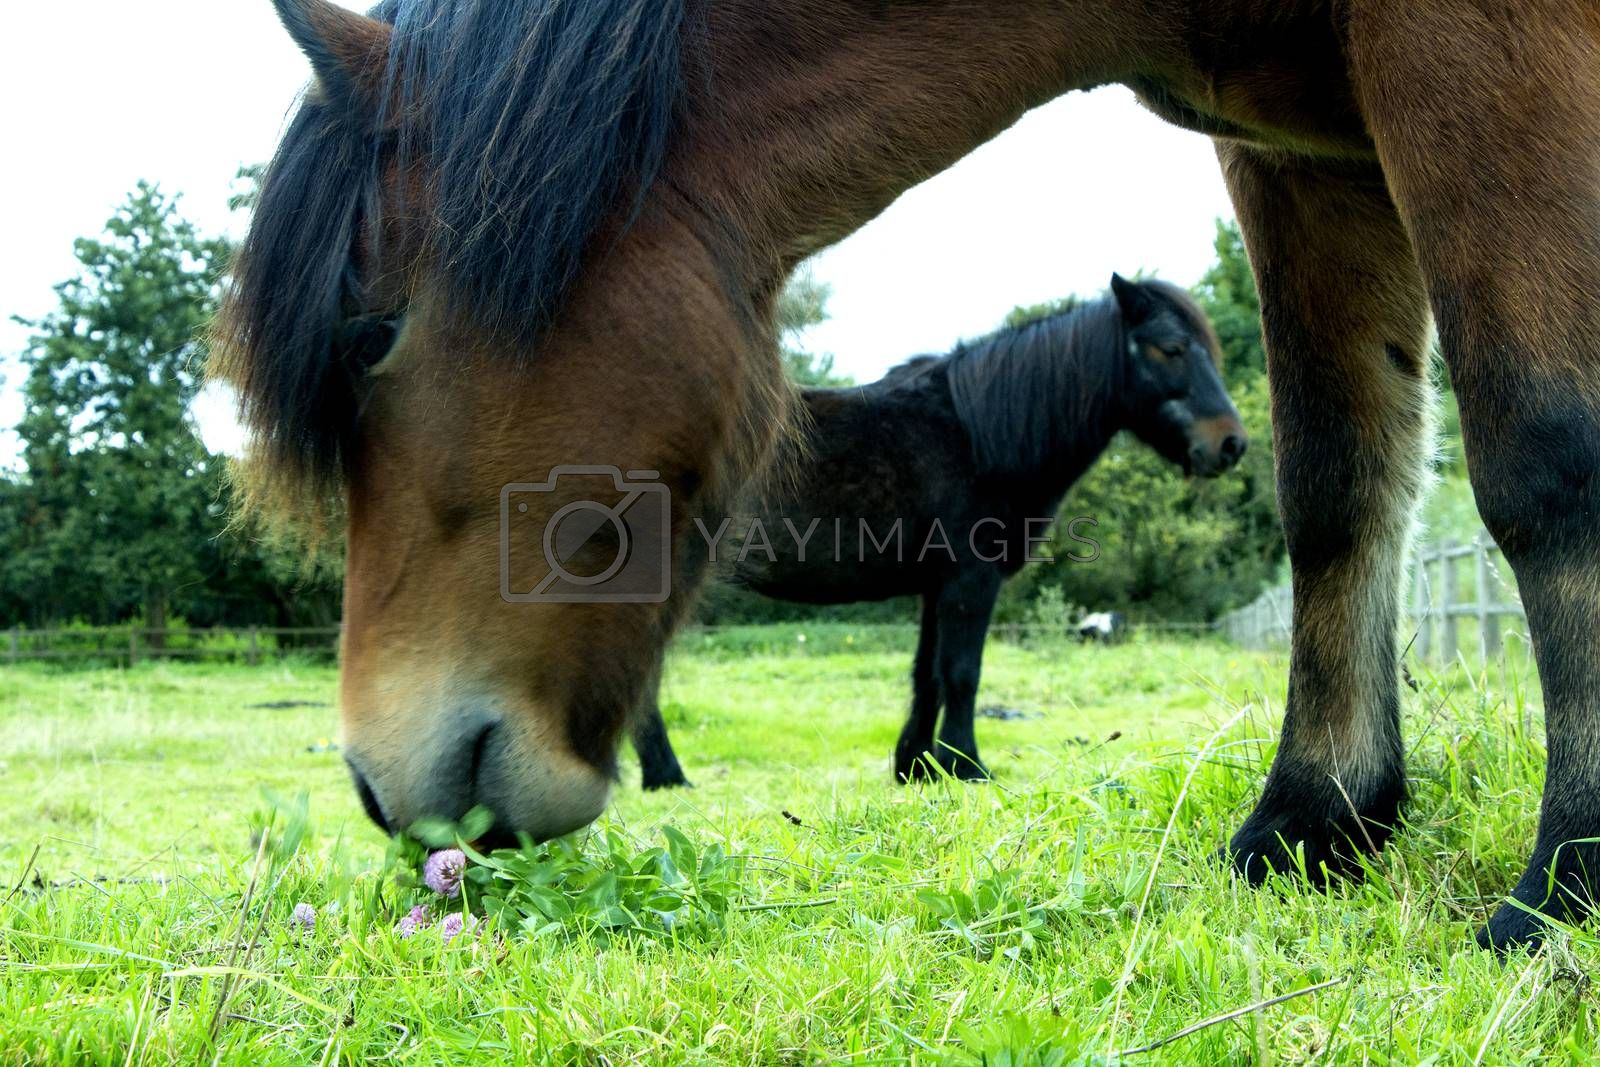 Two horses standing and eating on a grass field outdoors in the summer